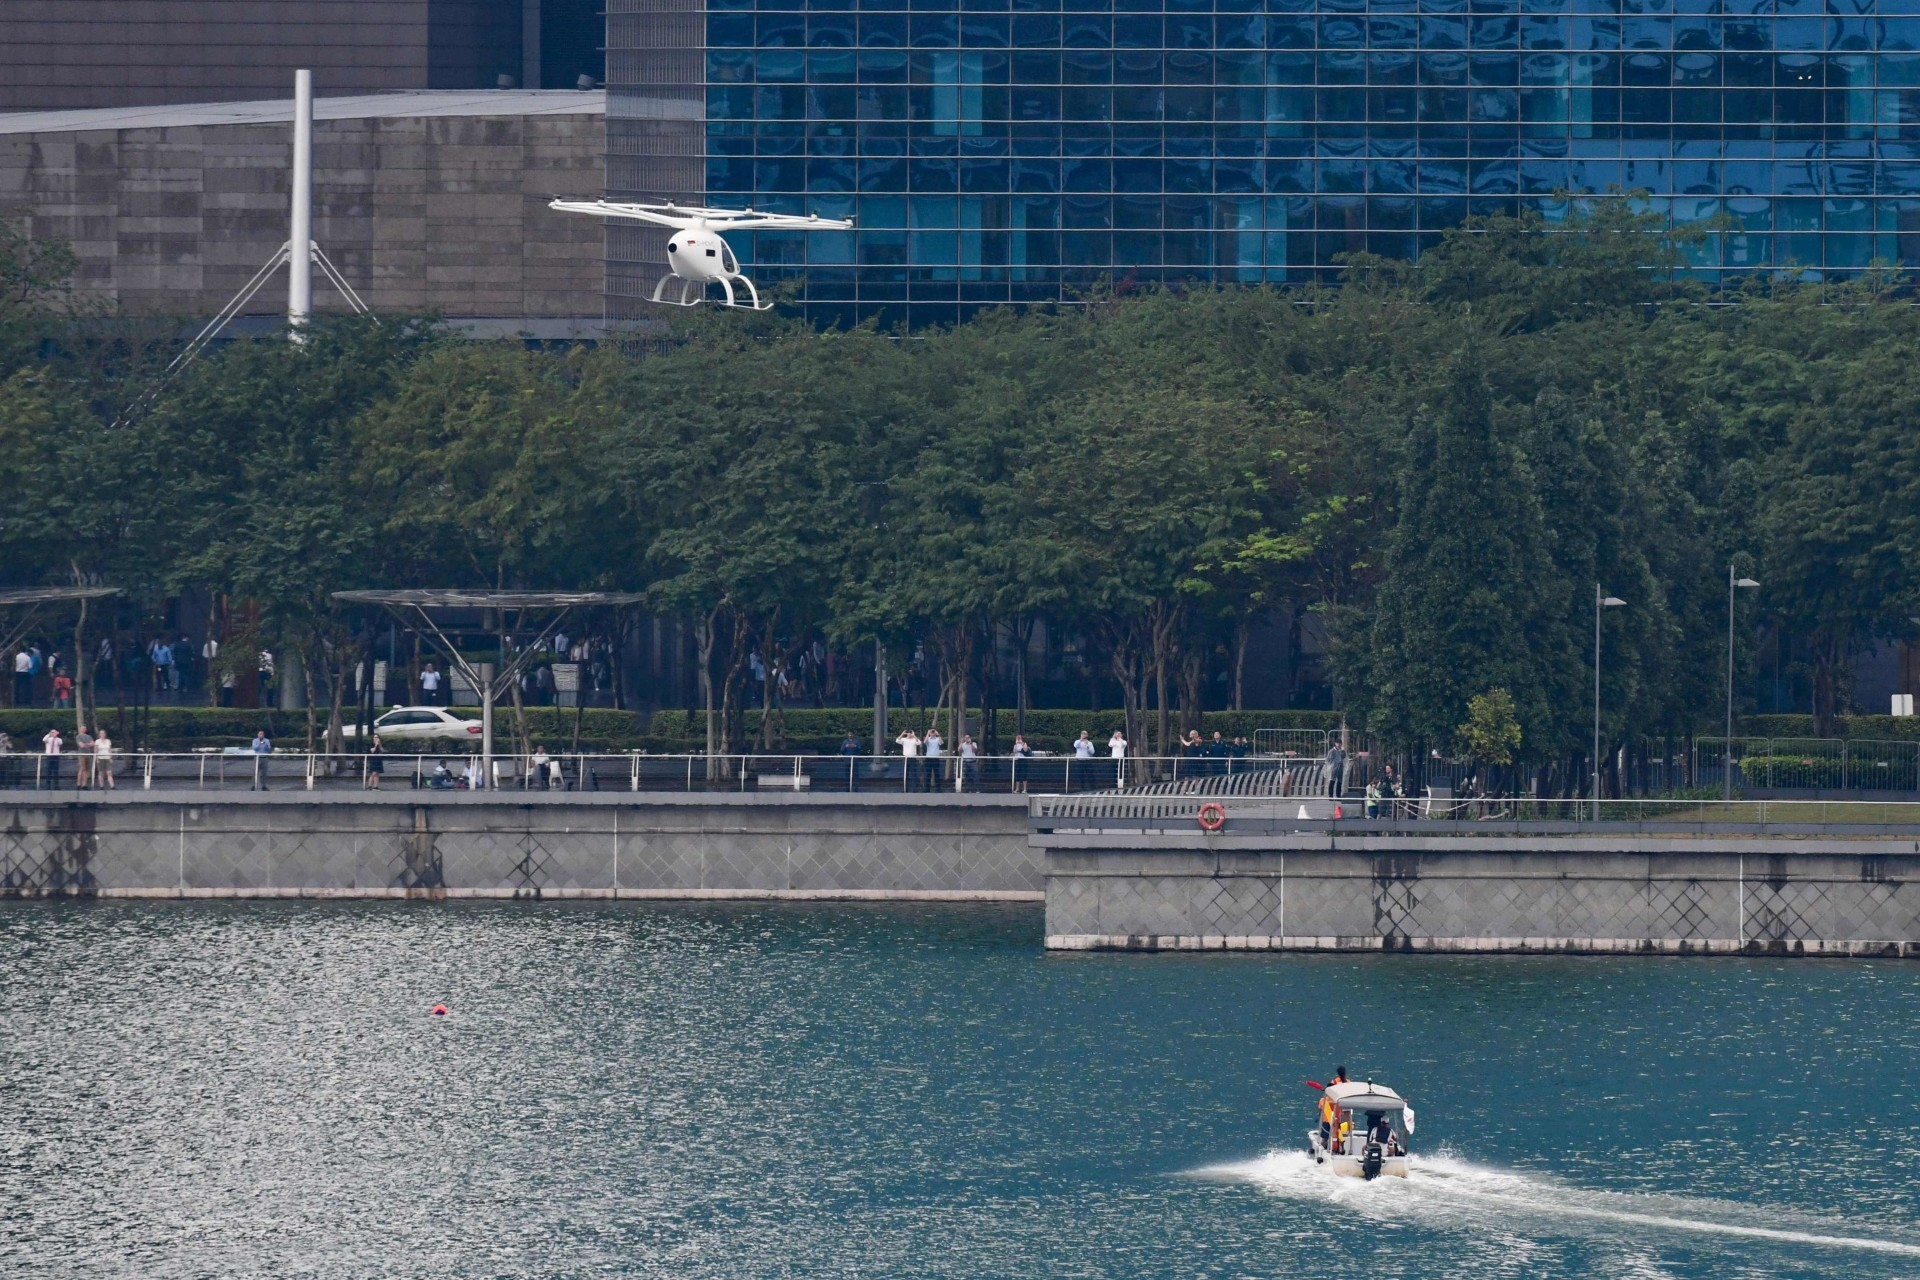 The 18 propeller vehicle, developed by German firm Volocopter and with a pilot onboard during the test flight, took off from a promontory and flew for about two minutes and 30 seconds around the Marina Bay district.